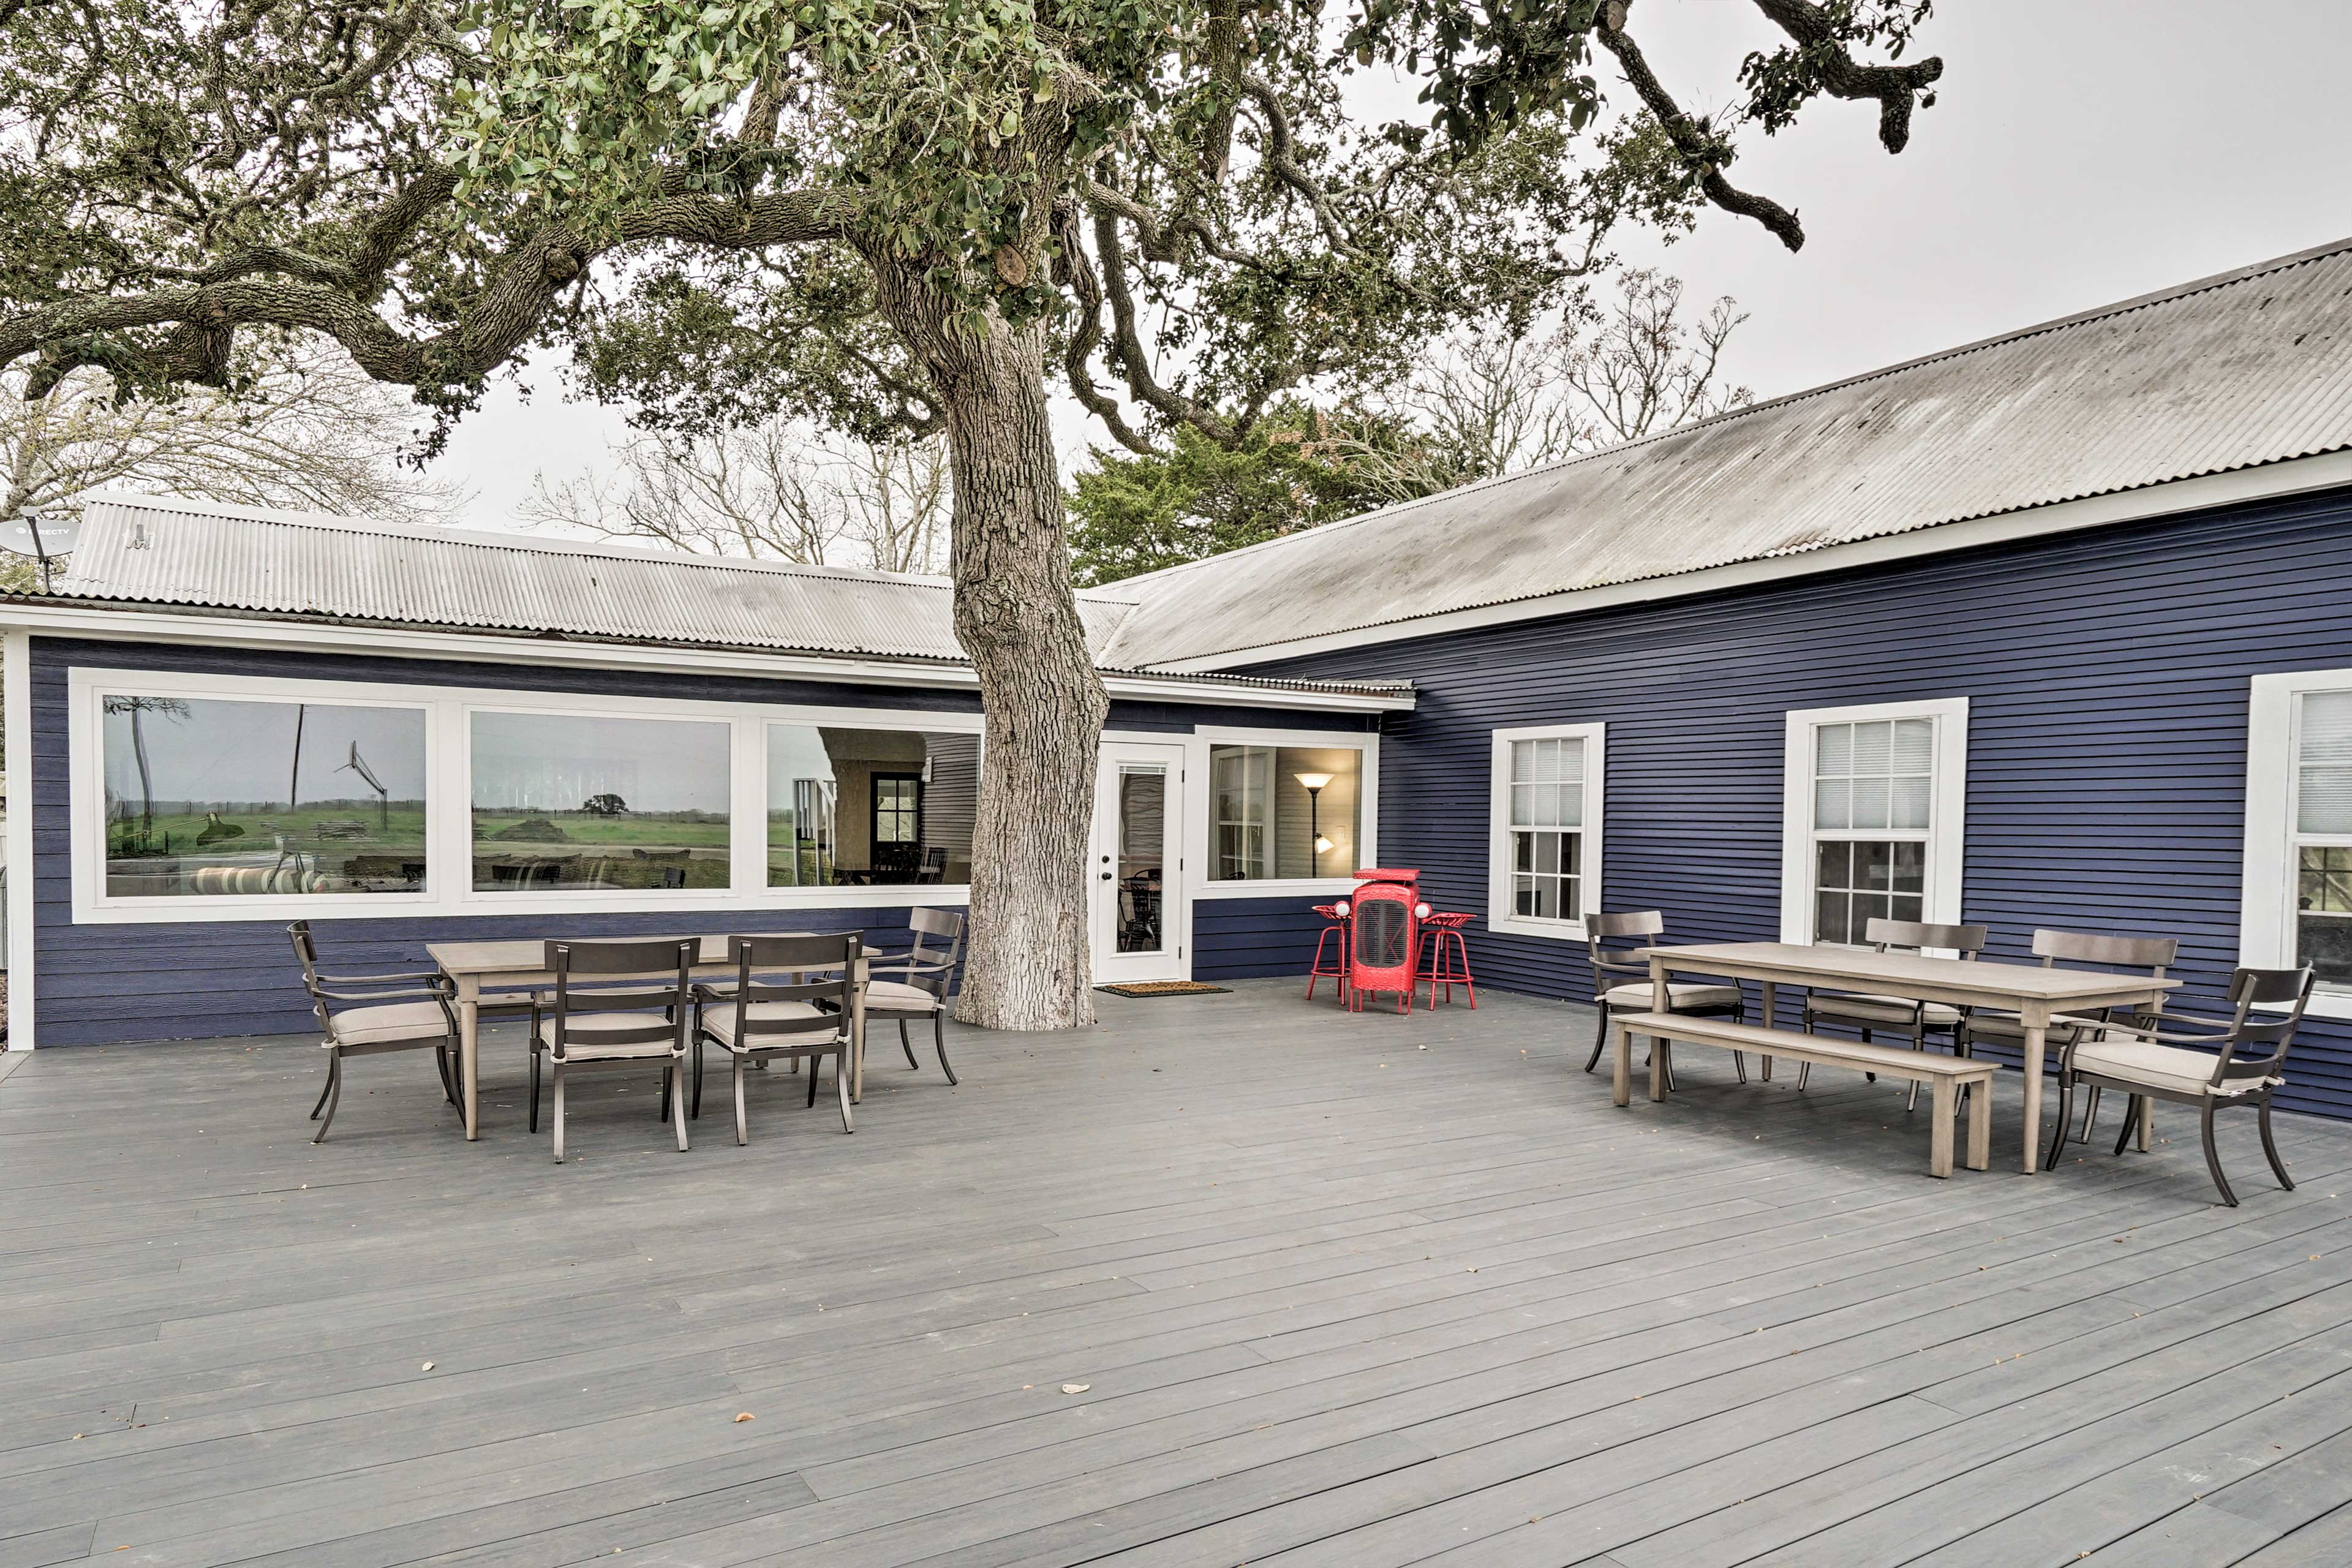 Dine al fresco on the spacious back deck with your loved ones.